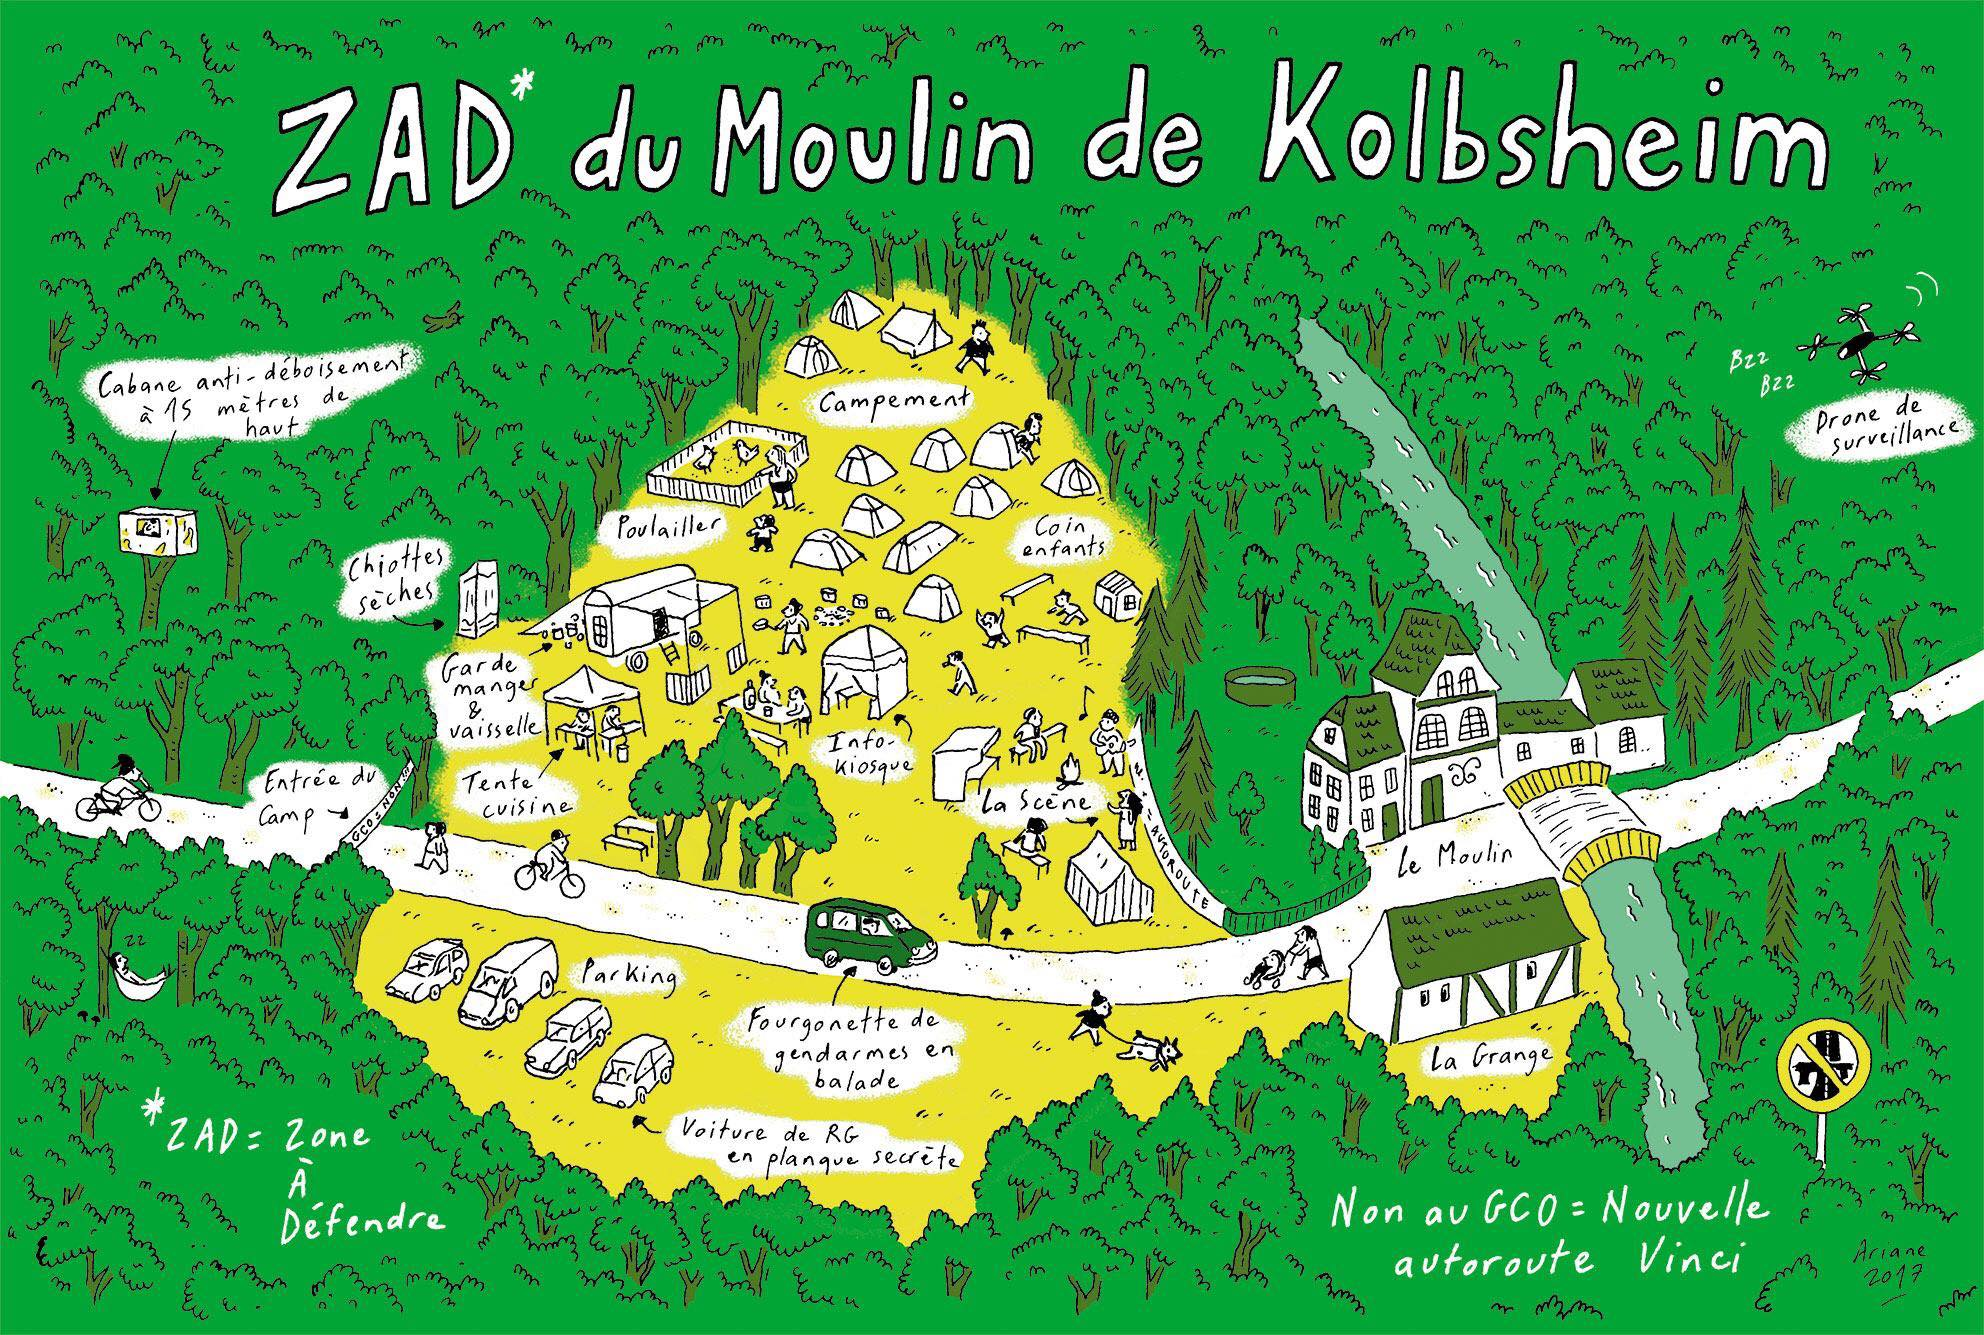 carte de la ZAD du Moulin